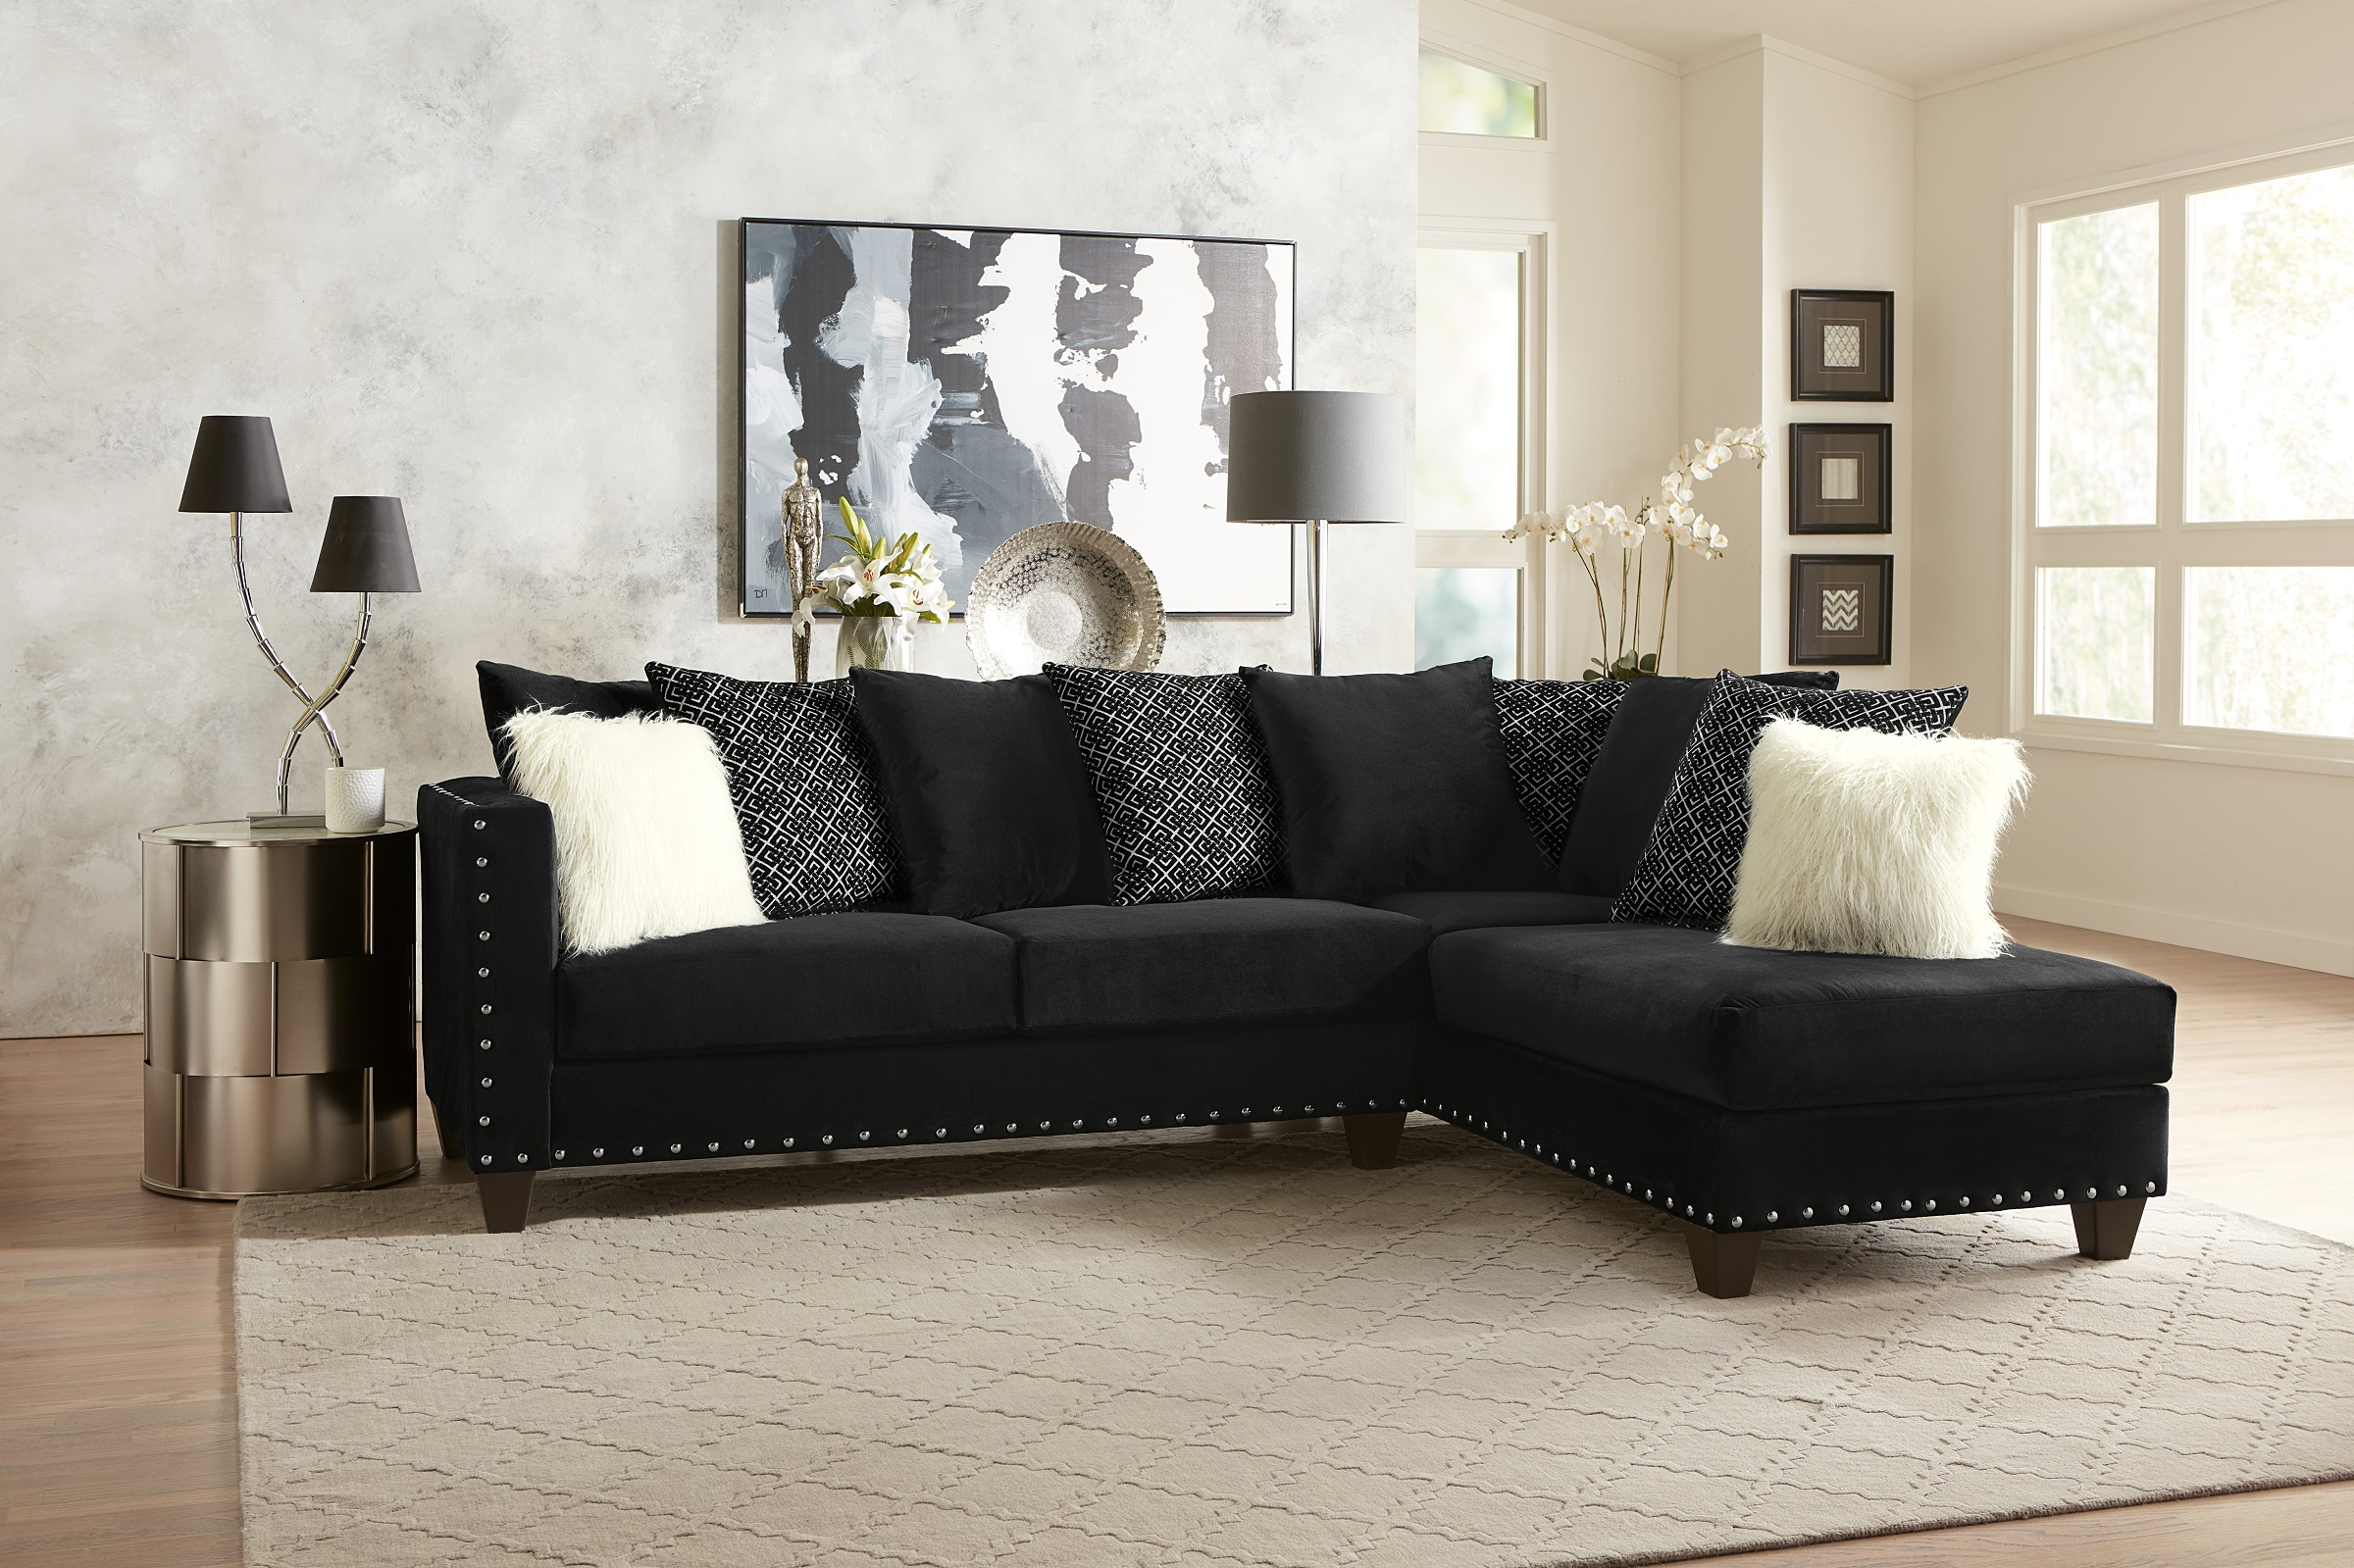 Living Room Modern Classic Black Fabric Sectional Sofa 2Pc For 4Pc Crowningshield Contemporary Chaise Sectional Sofas (View 3 of 15)